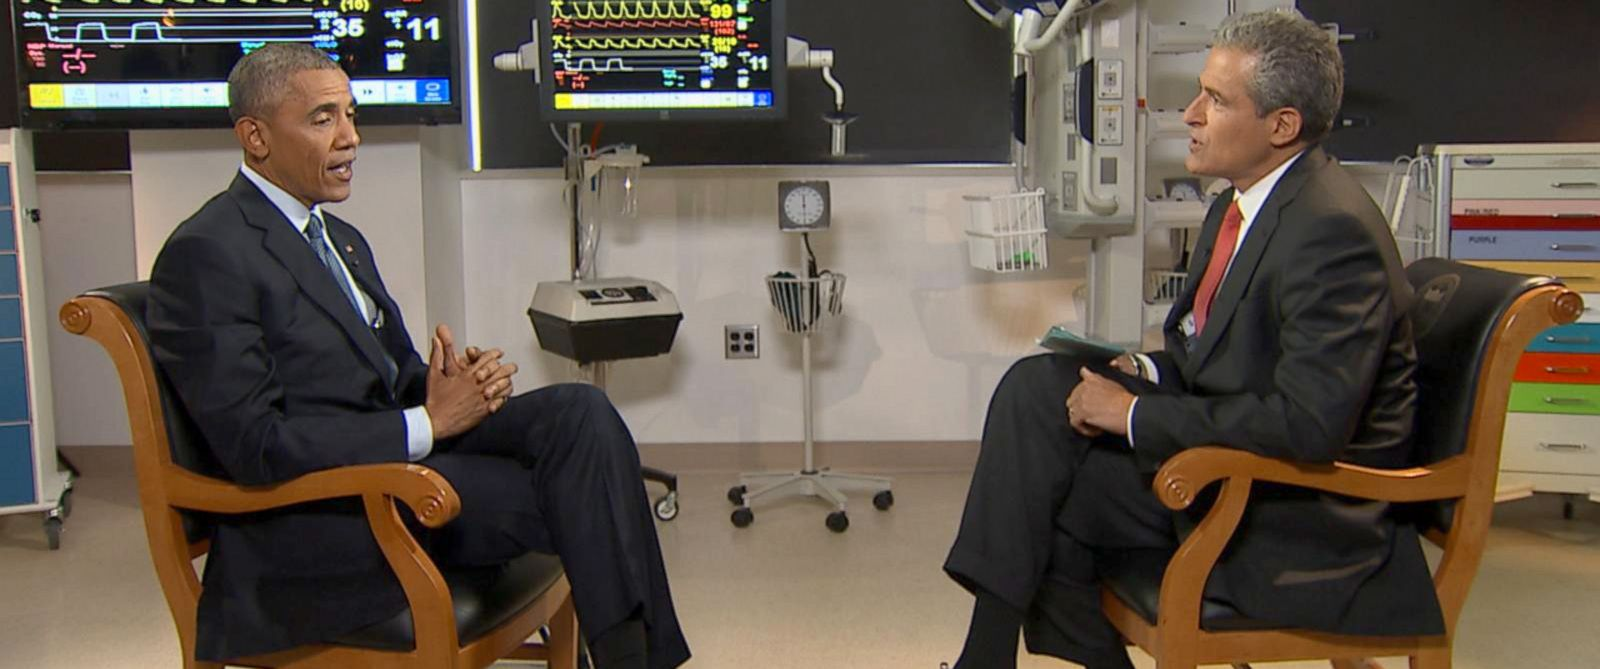 PHOTO: ABC News Dr. Richard Besser interviews President Obama.